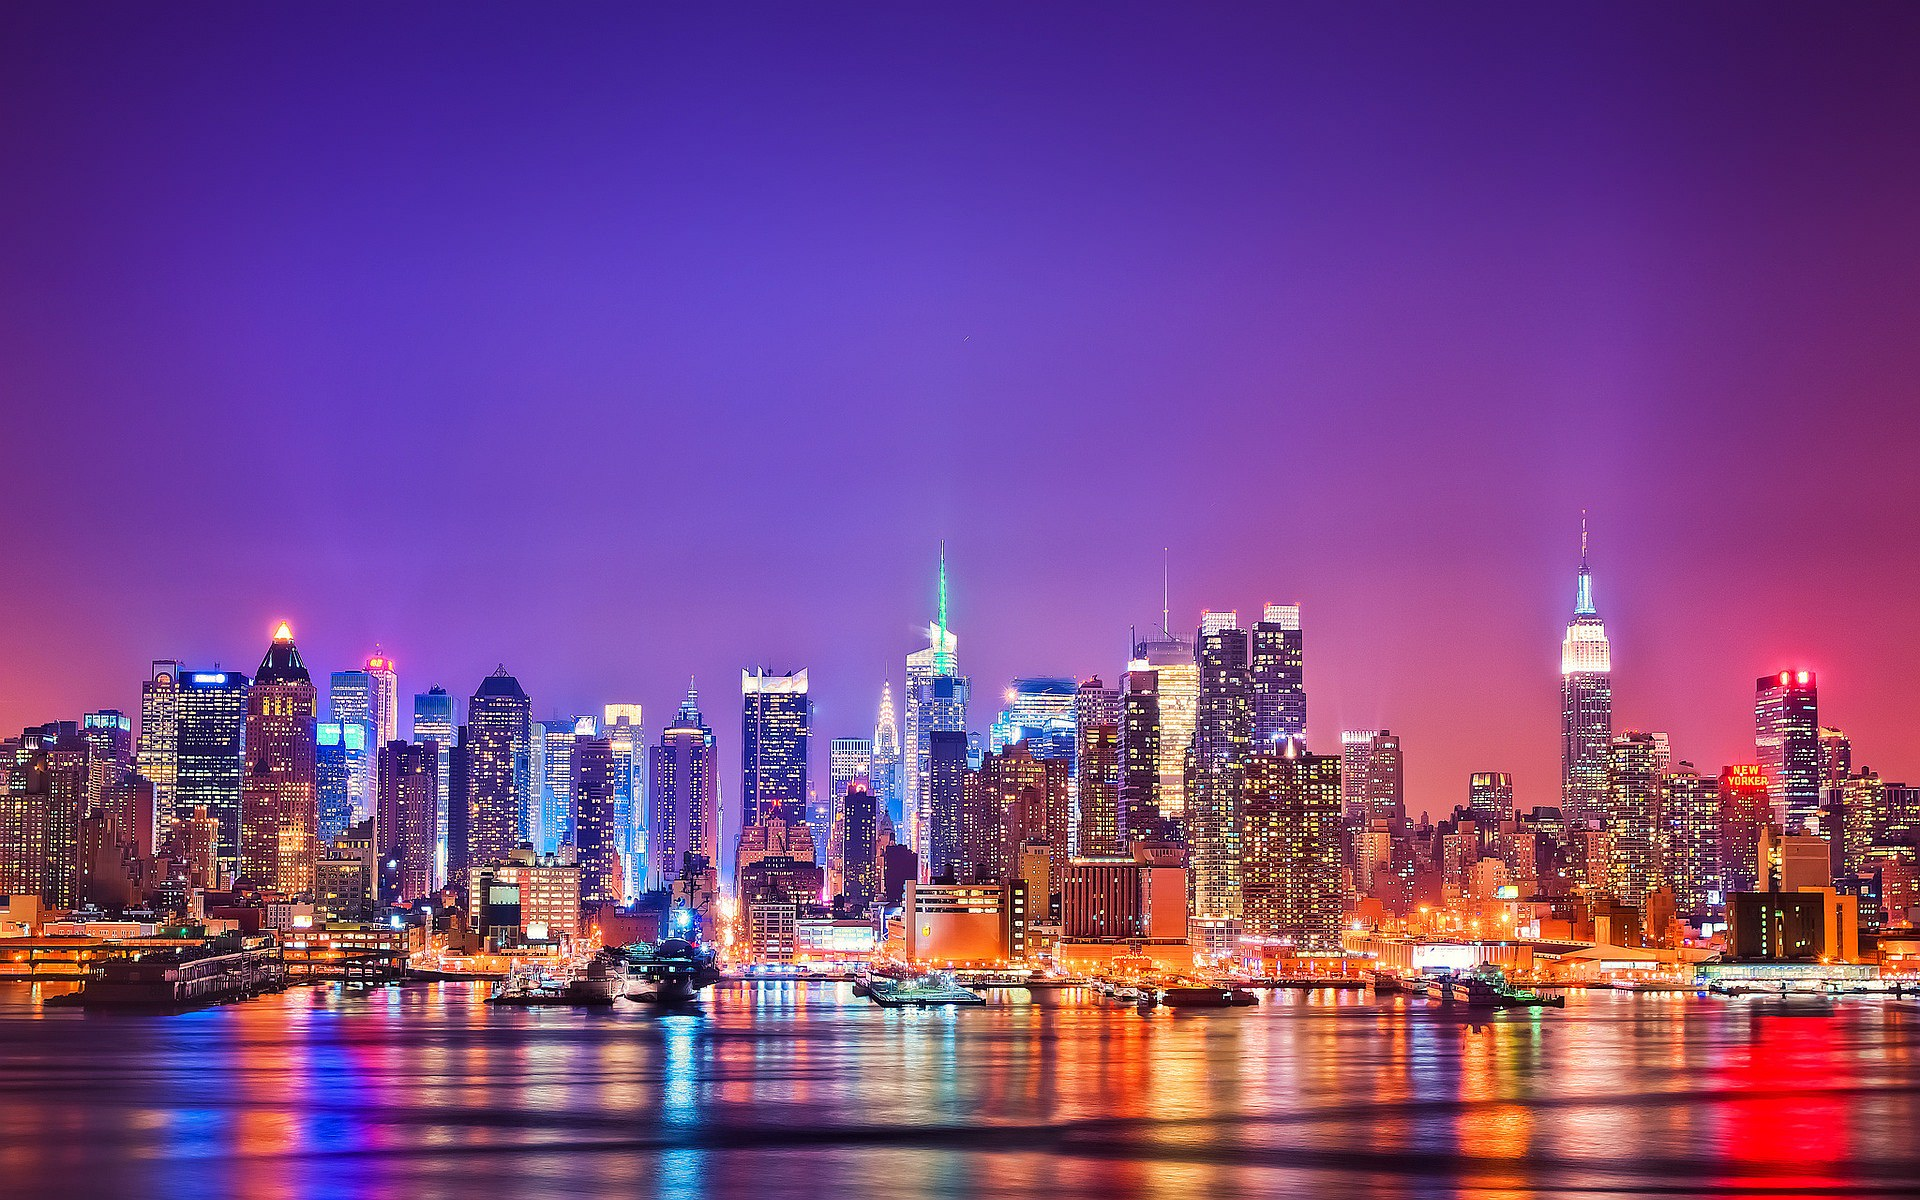 newyork city wallpaper